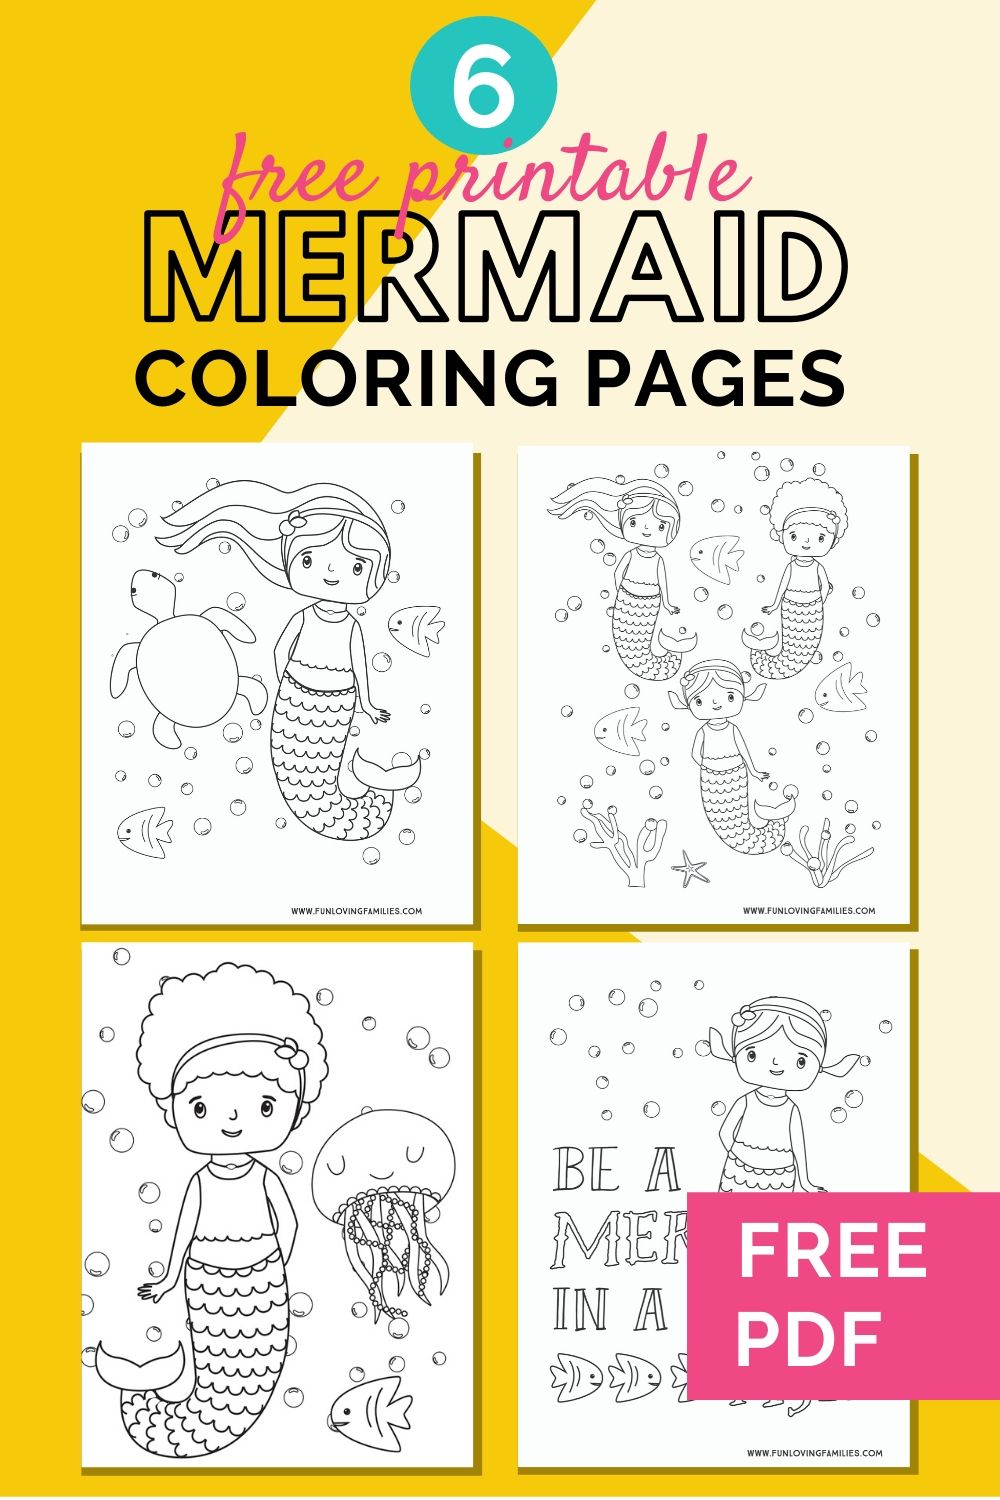 10 Free Coloring Pages That Will Keep Your Kids Occupied at Home | Parents | 1500x1000